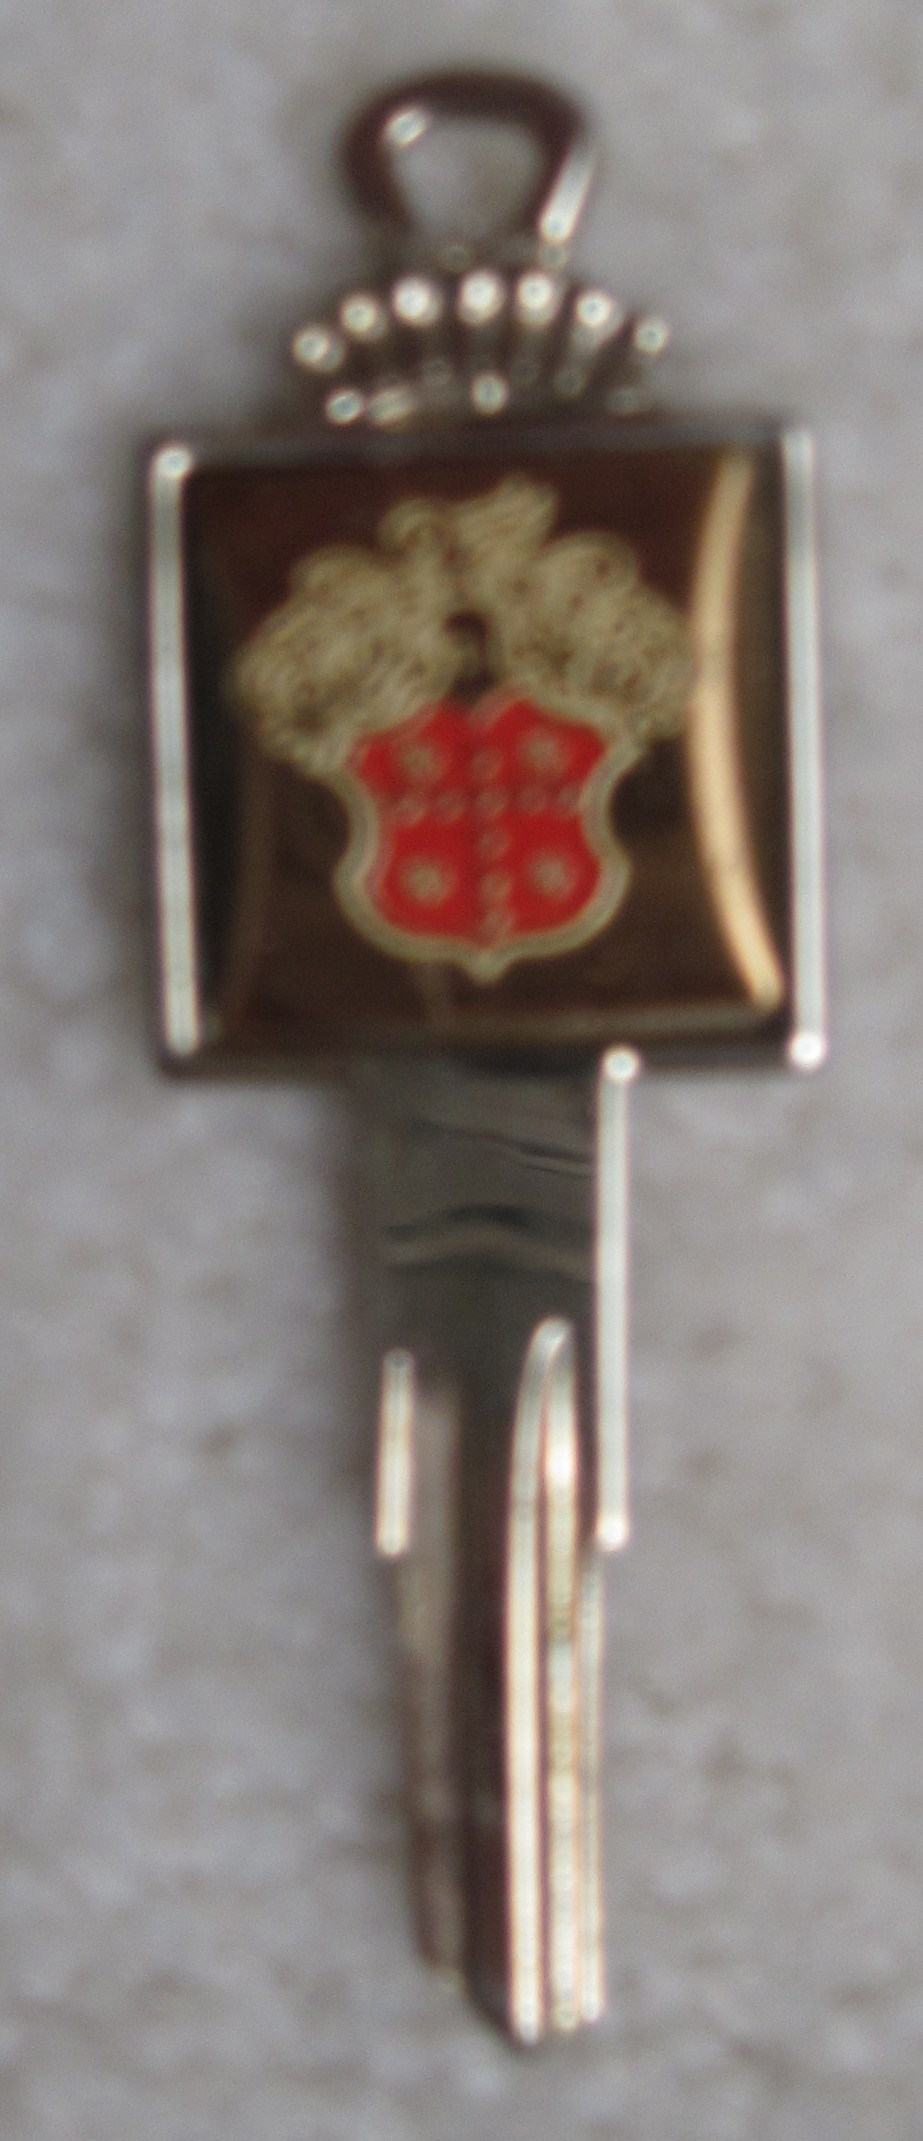 Car Keys :: Packard Crest